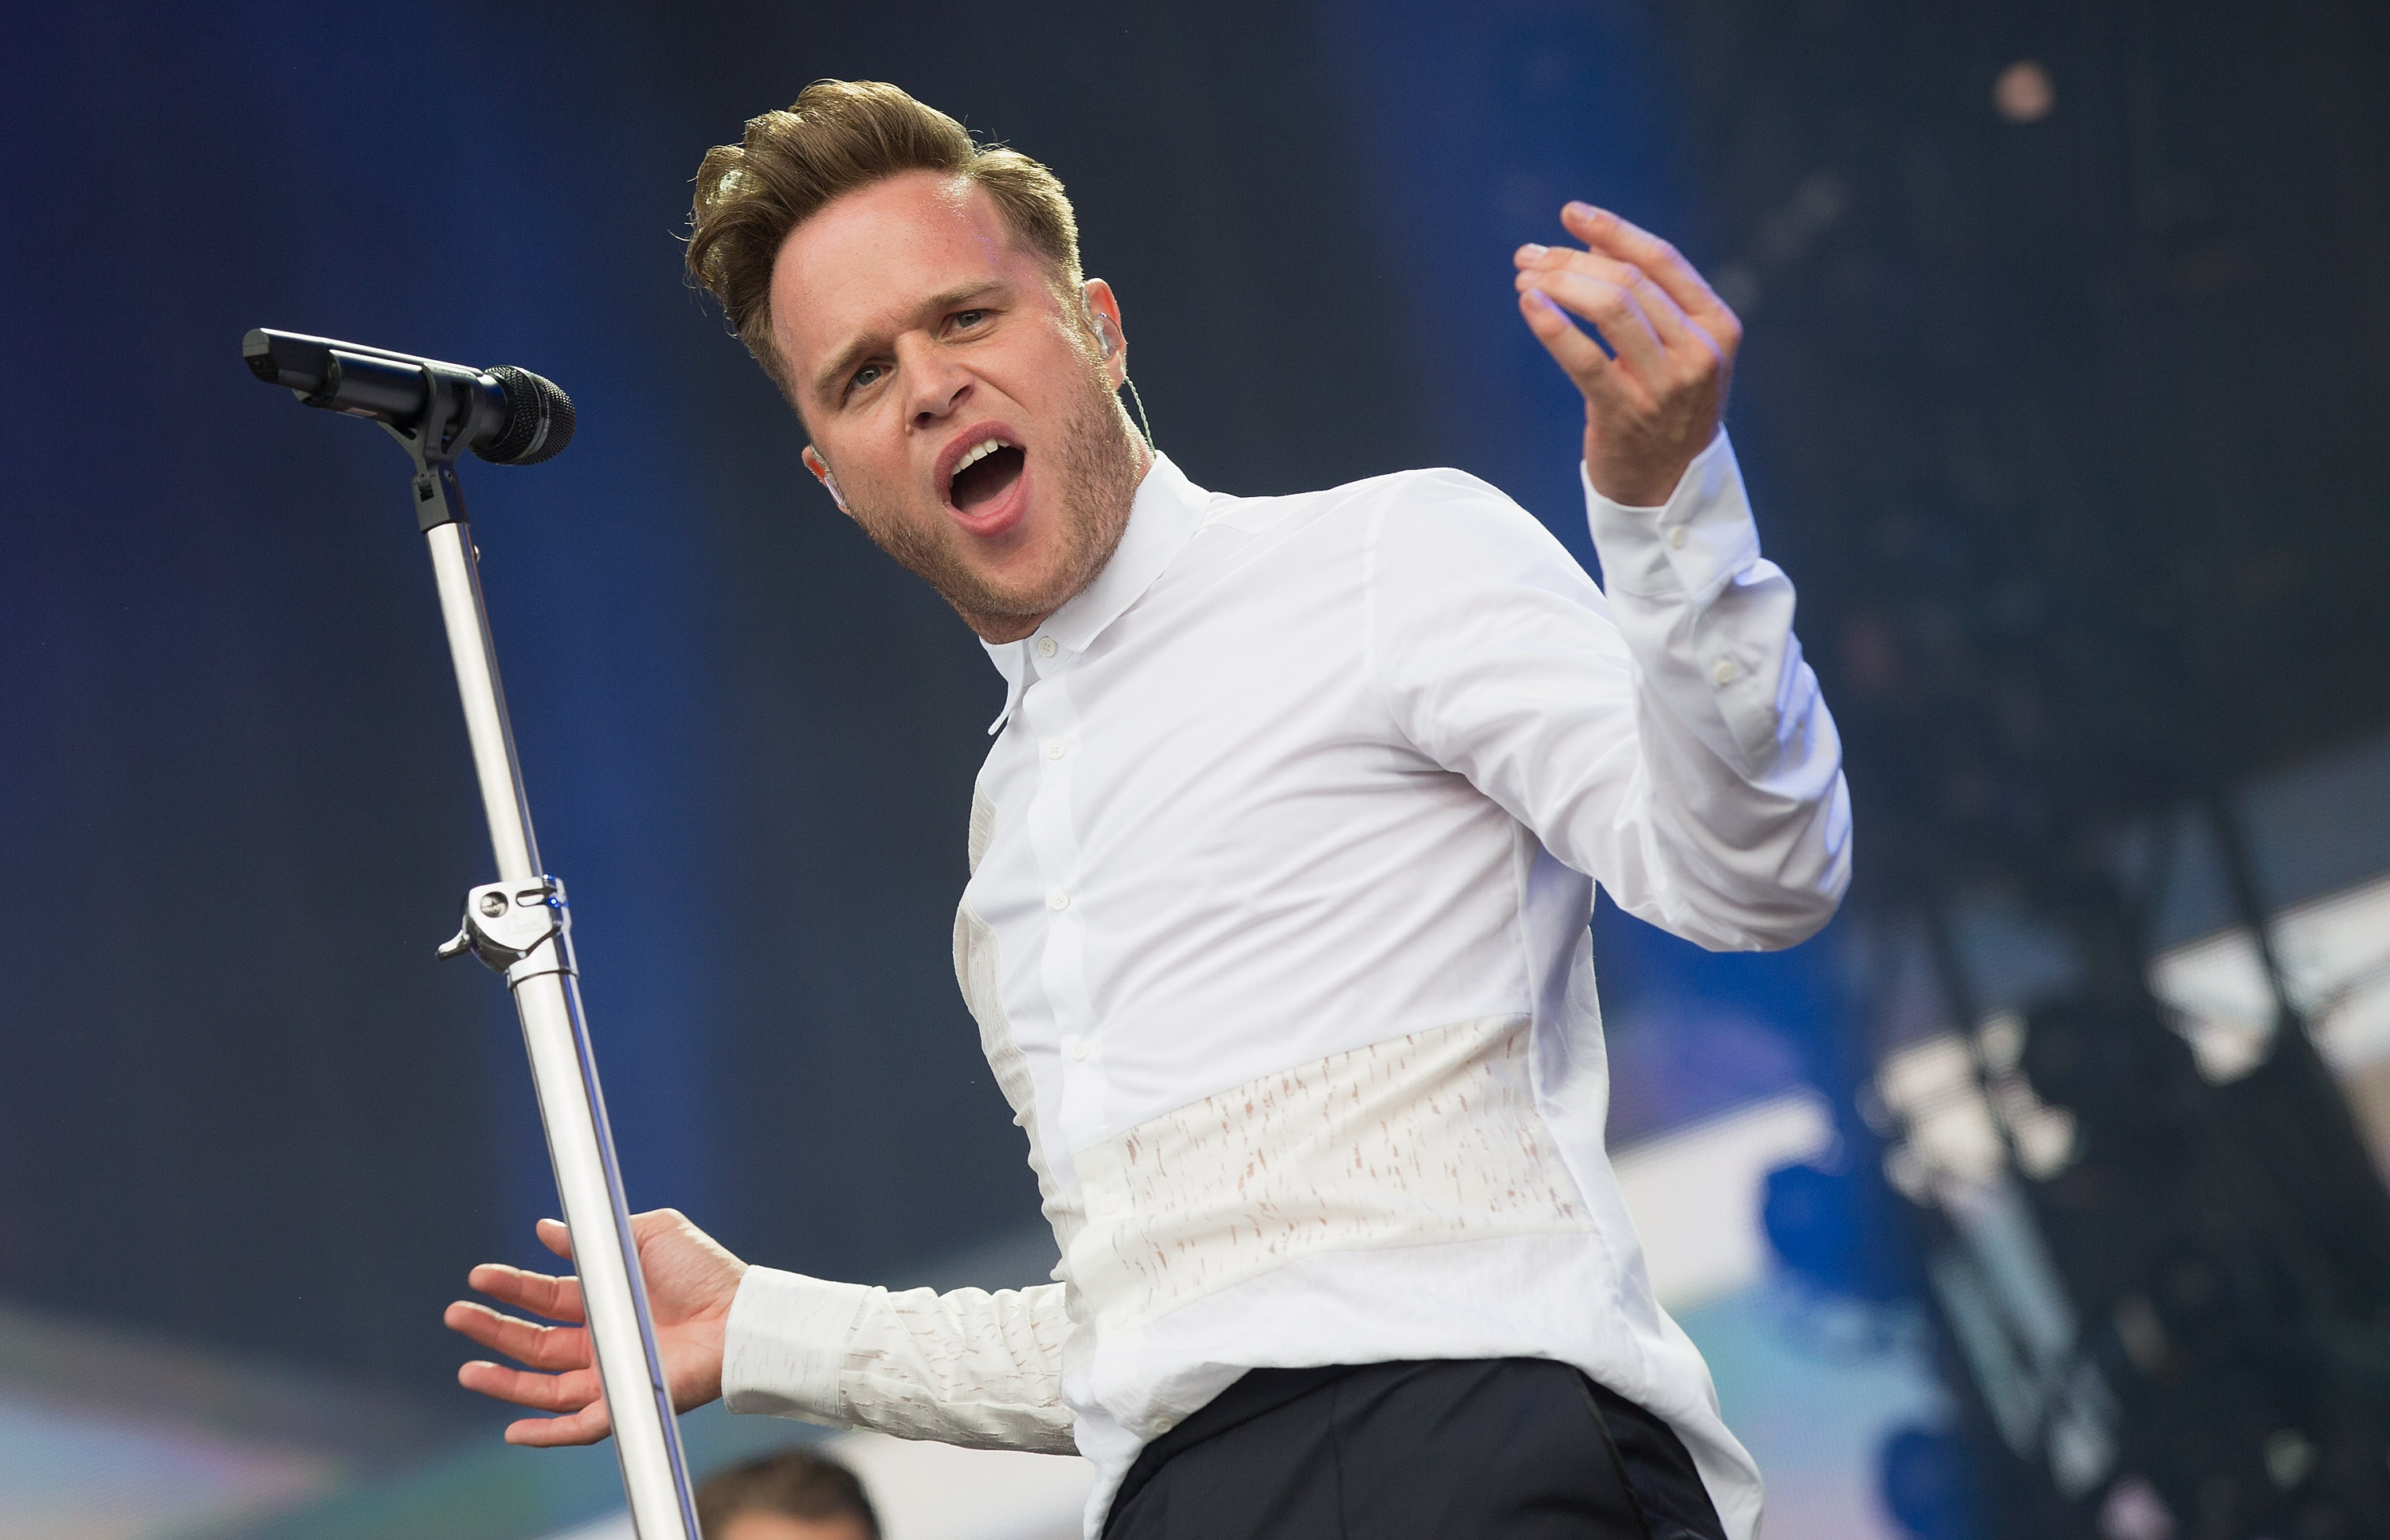 Olly Murs in 'genuine panic' after anxiety left him 'unable to breathe or remember lyrics' on stage